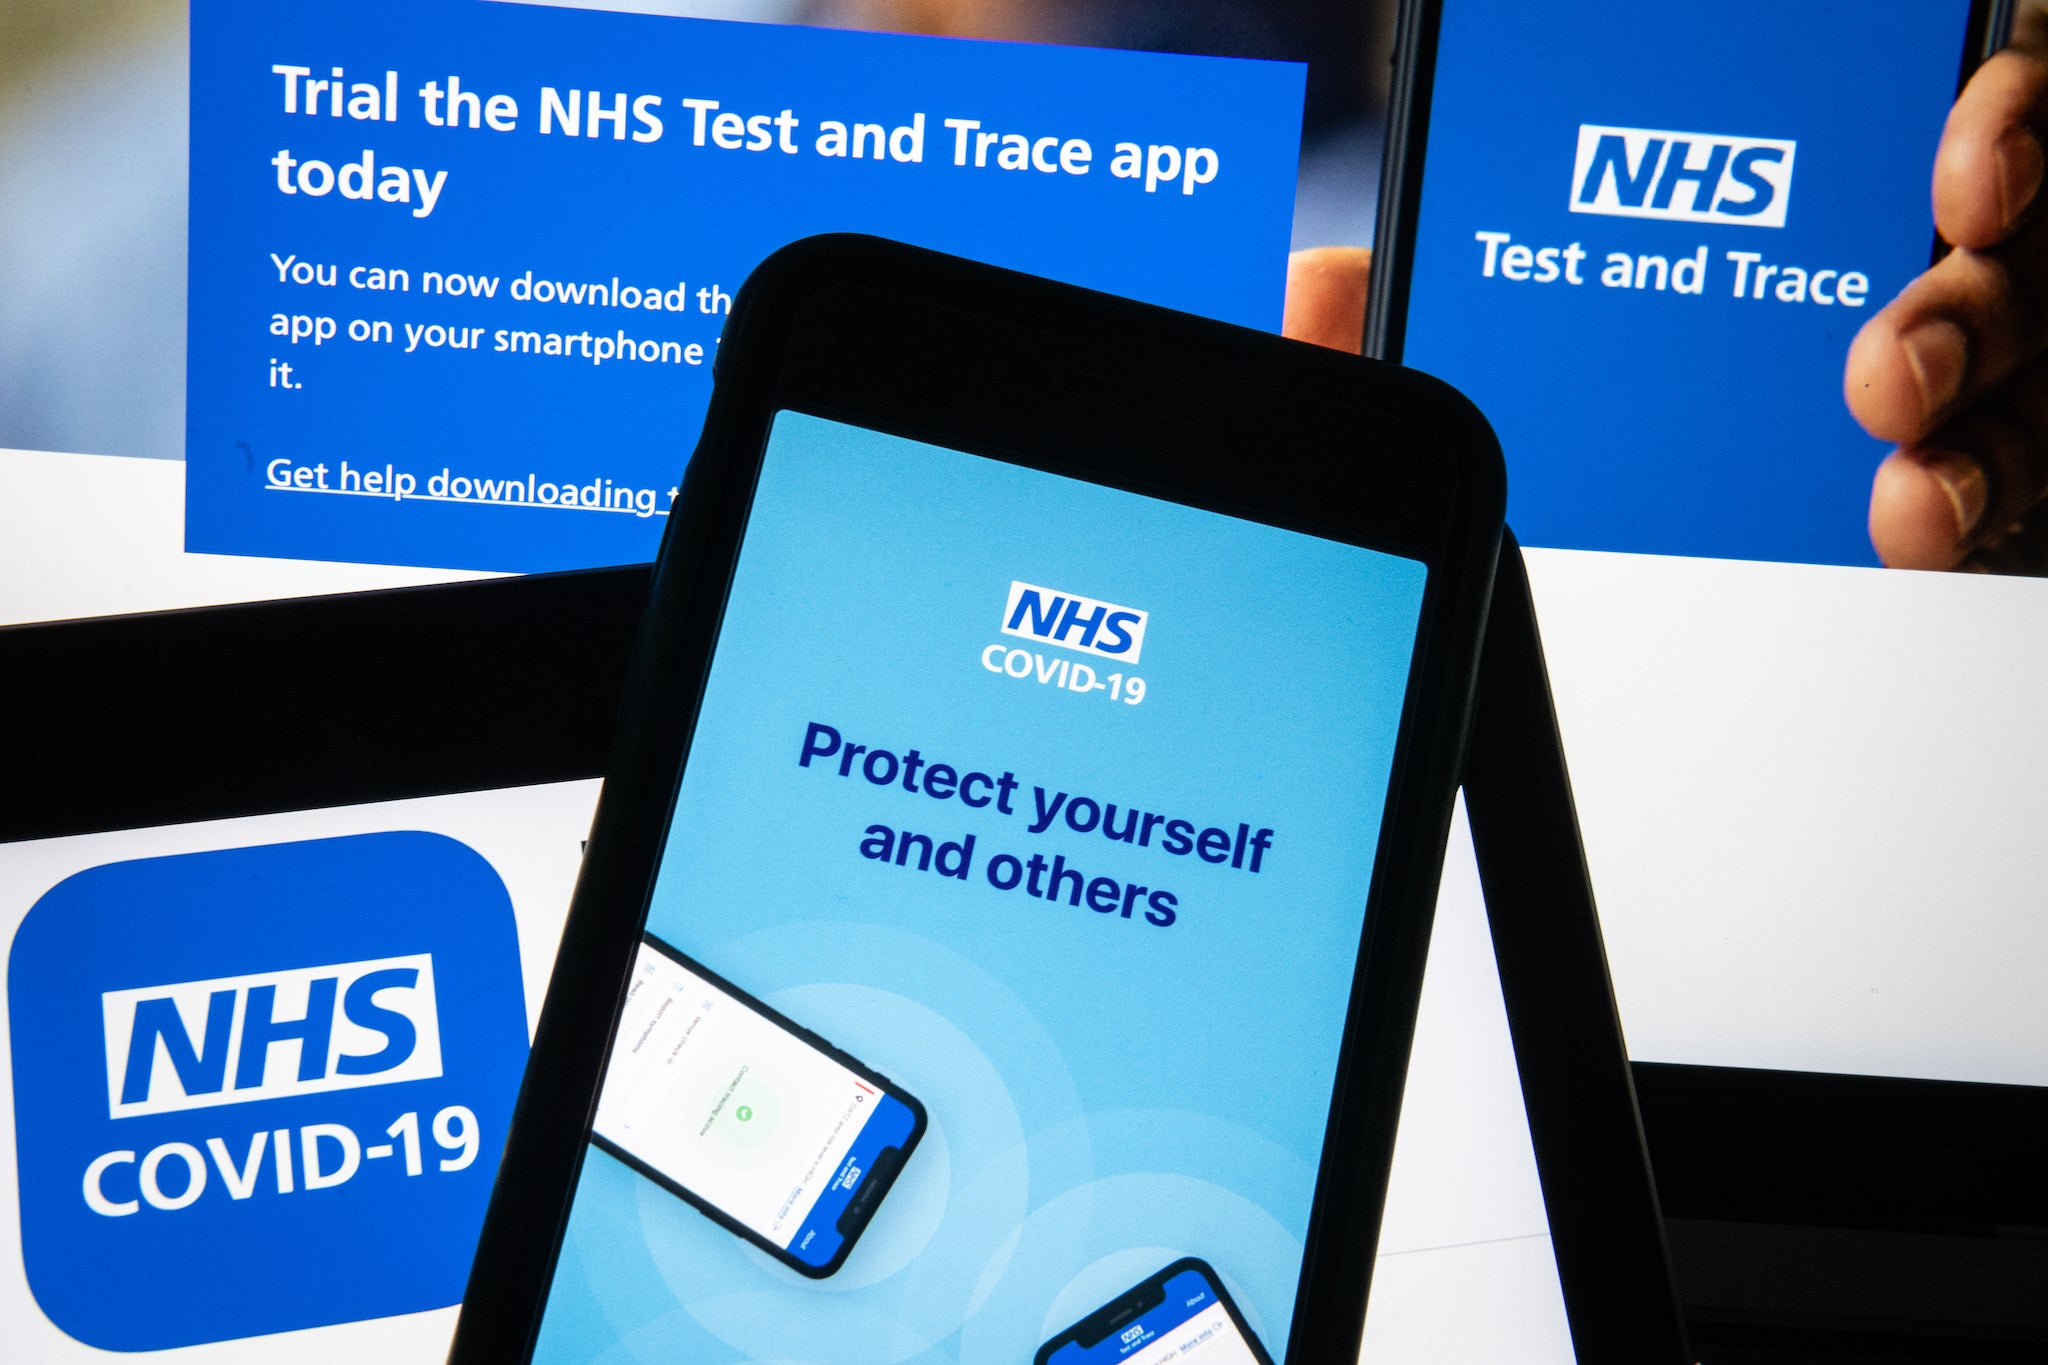 NHS coronavirus app: Future updates will warn users if they are exposing themselves to too many people, developers say